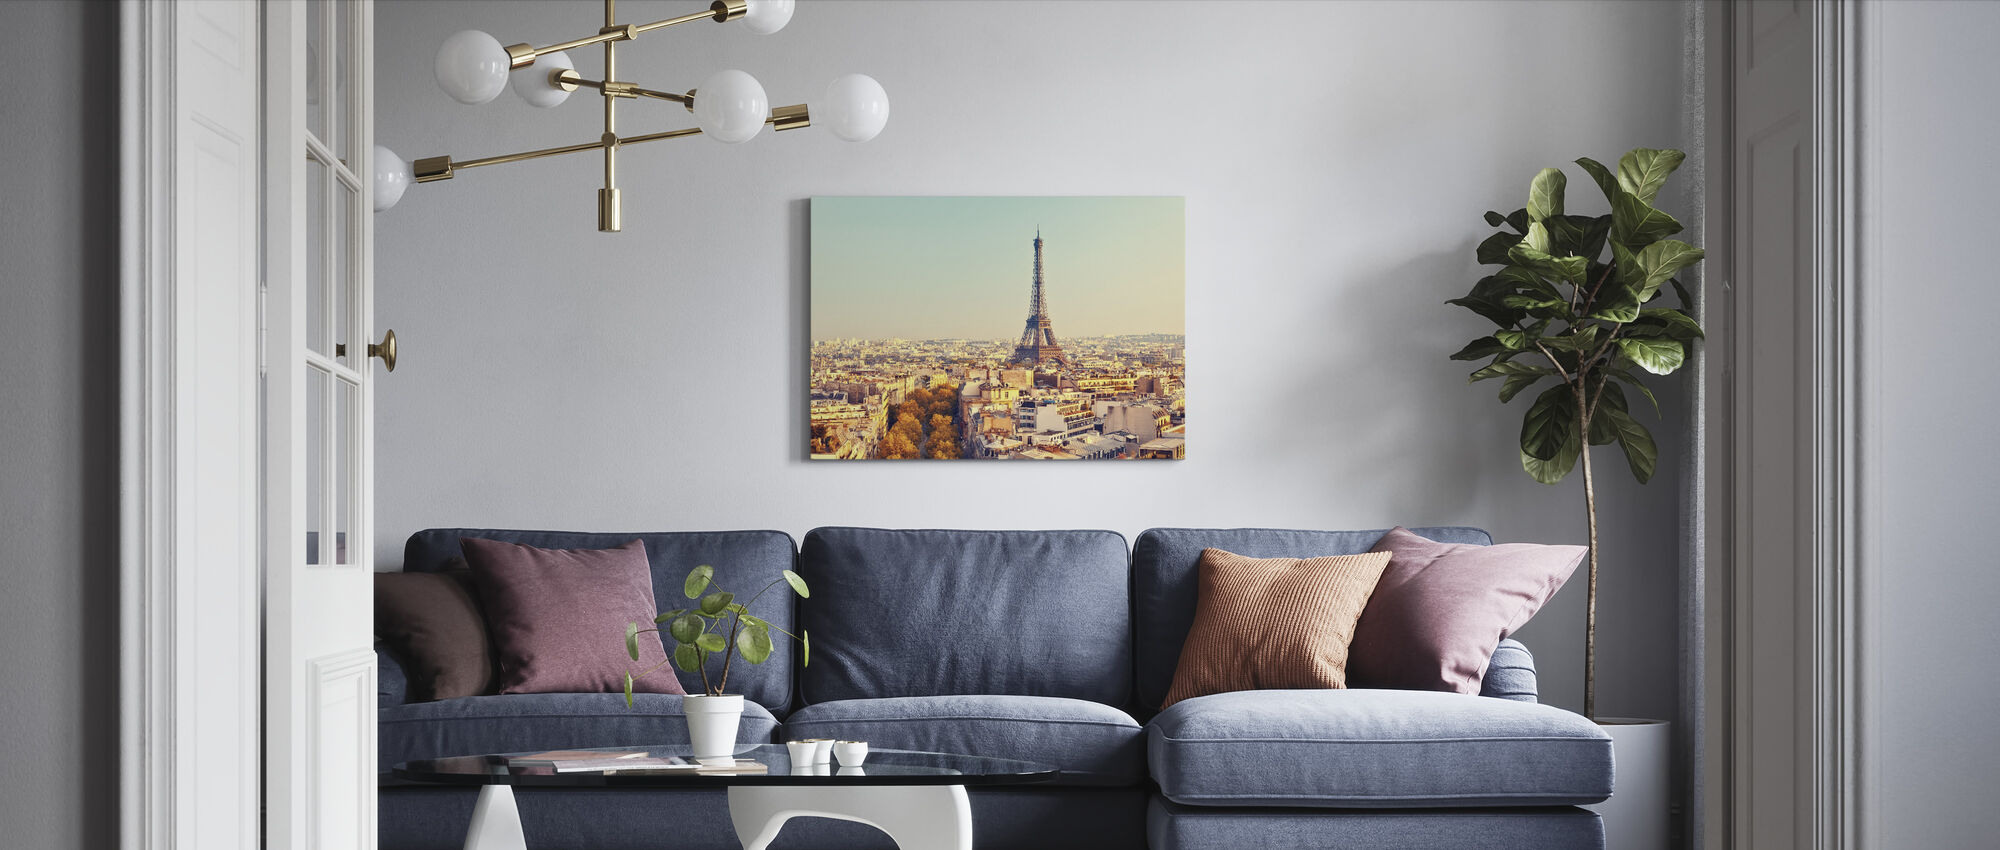 Eiffel Tower at Sunset - Canvas print - Living Room